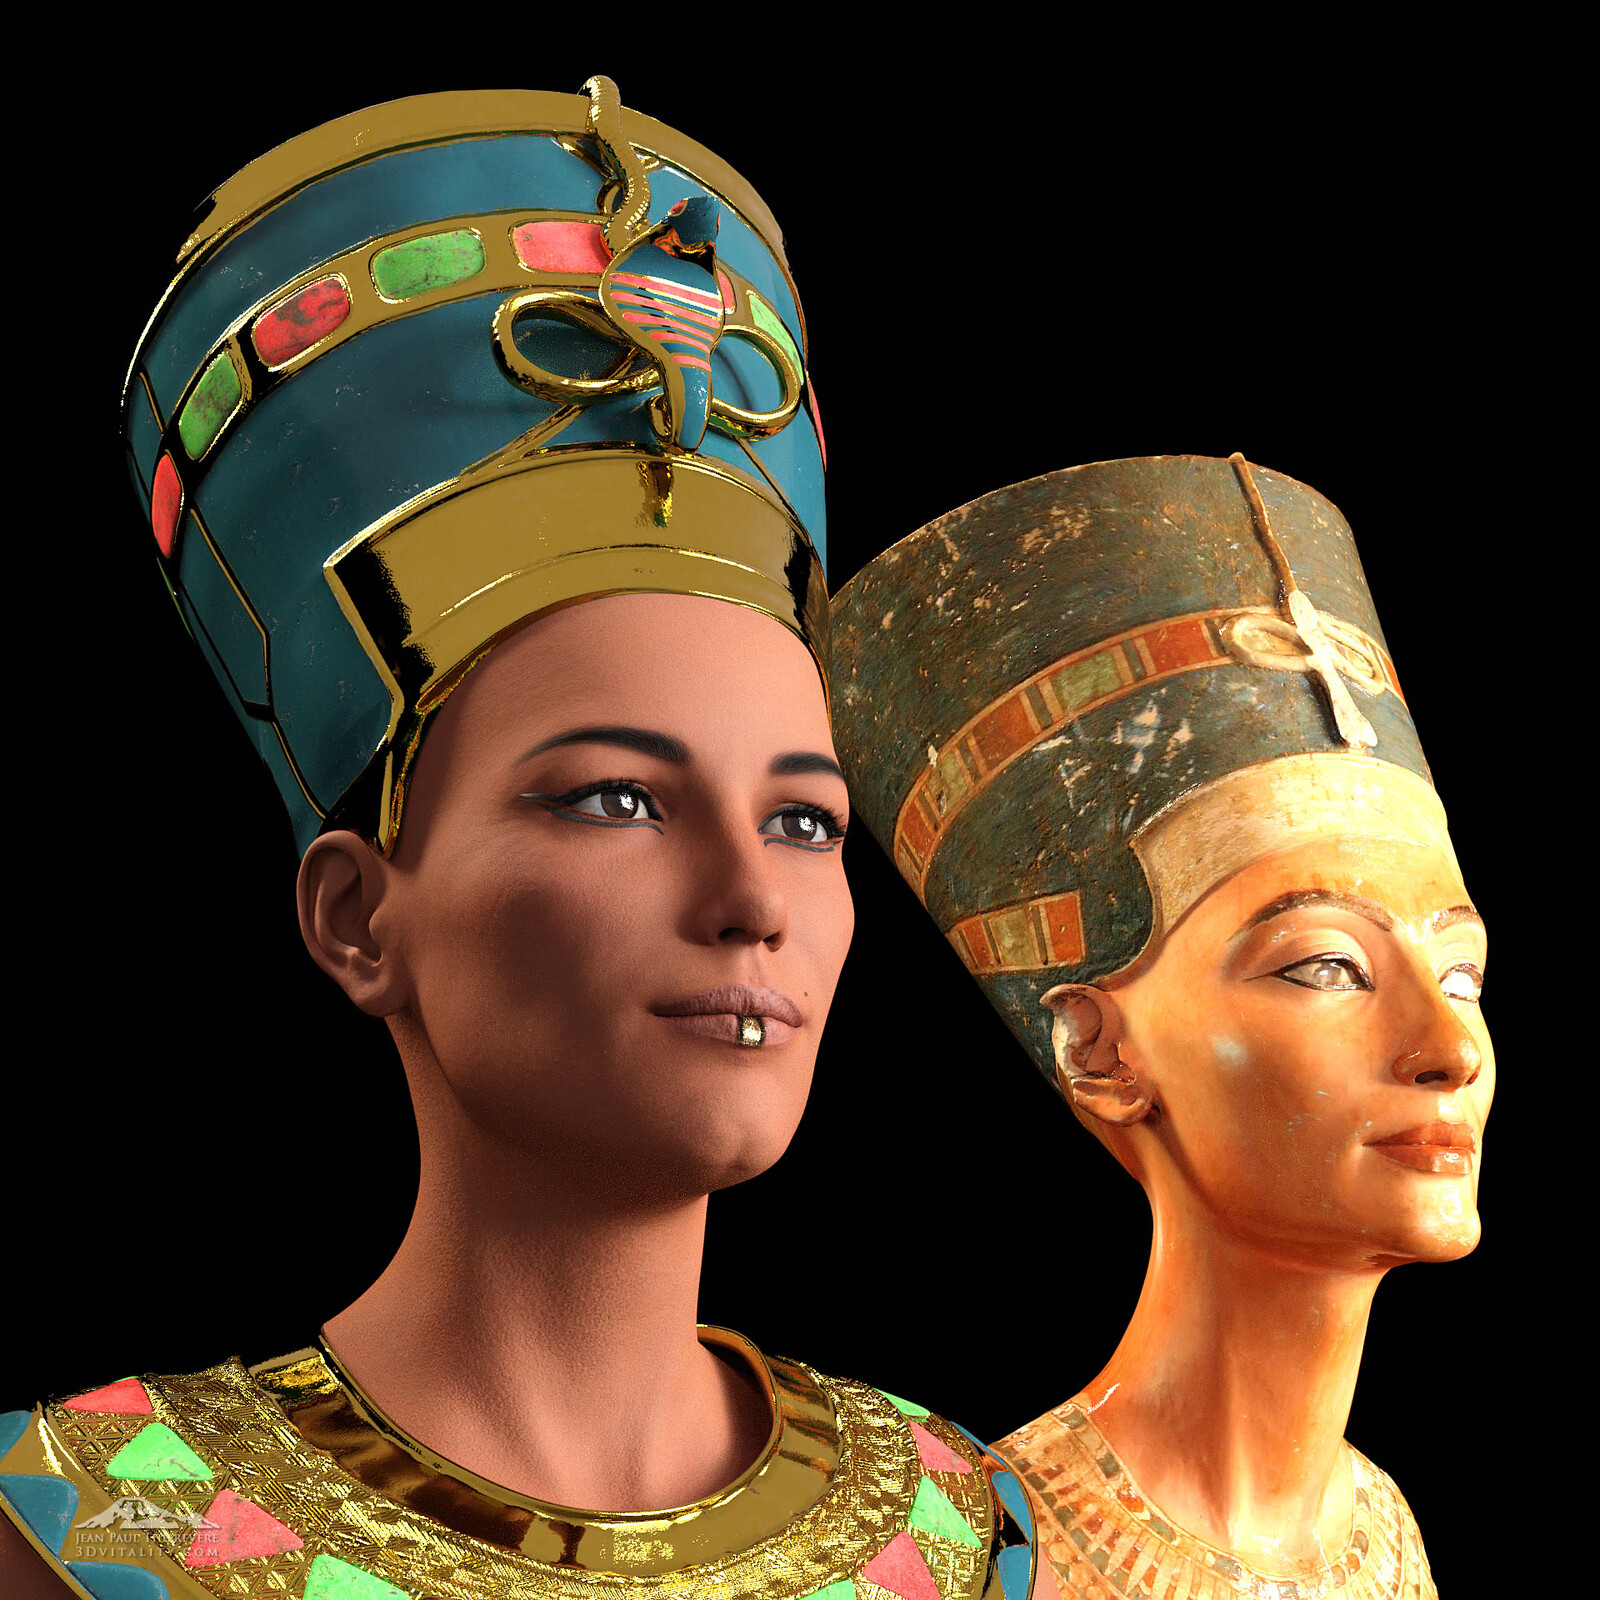 Second try, to come closer to the original: Neferet-iti and her bust, the original bust of Nofretete